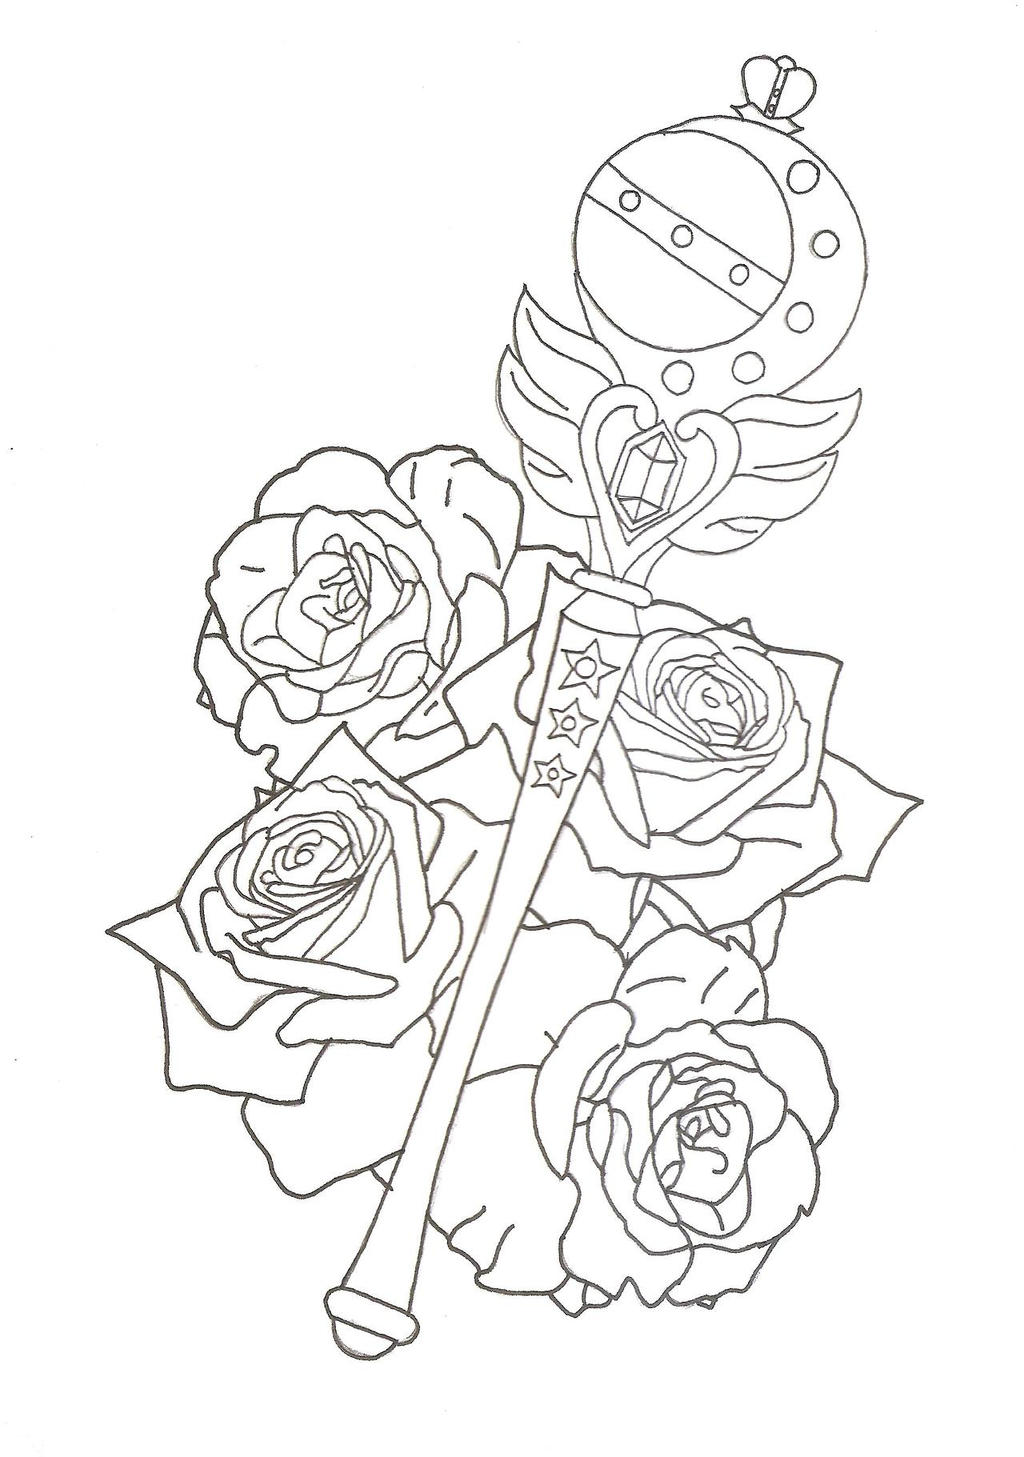 New Line Art Design : Sailor moon cutie rod tattoo design by